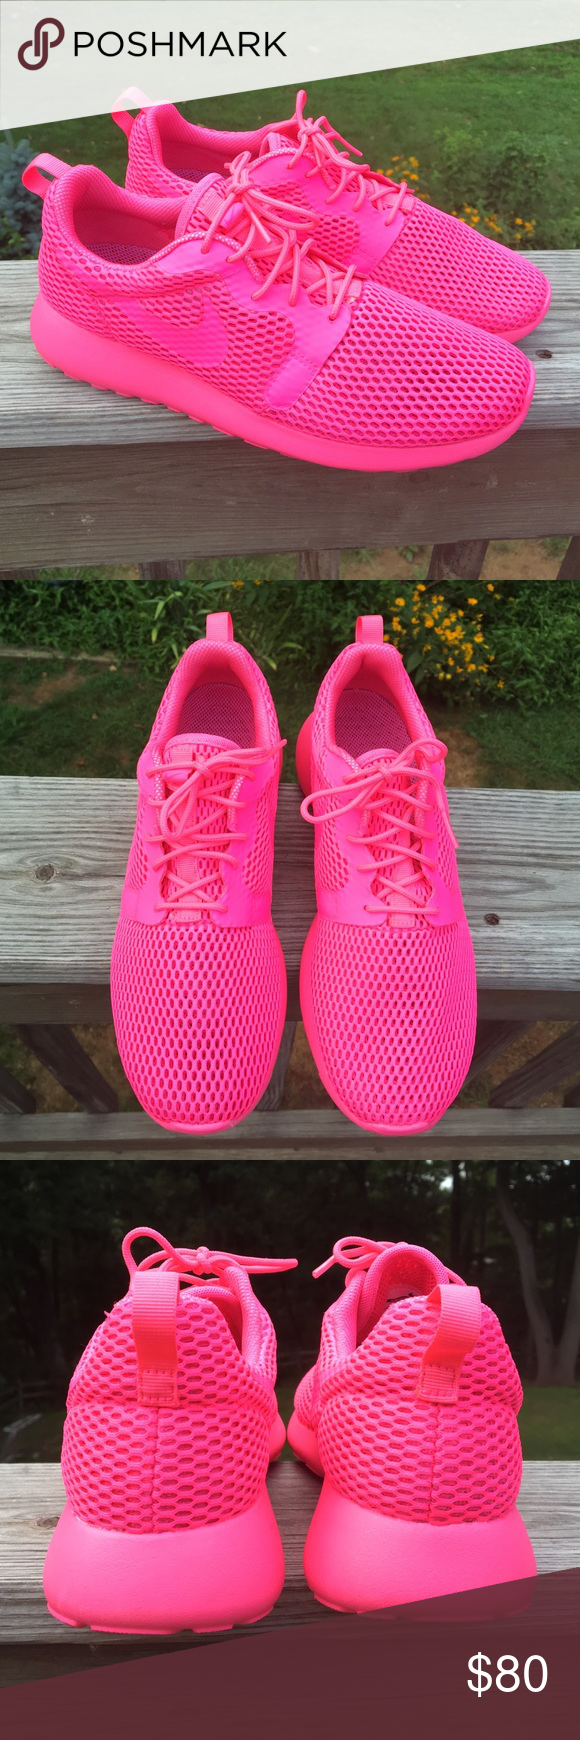 6926c2c5a27a Women s Nike Roshe One Hyper Breathe Size 8.5 in the color Pink Blast Fire  Pink. New without box. These are definitely a statement shoe. NO TRADES!